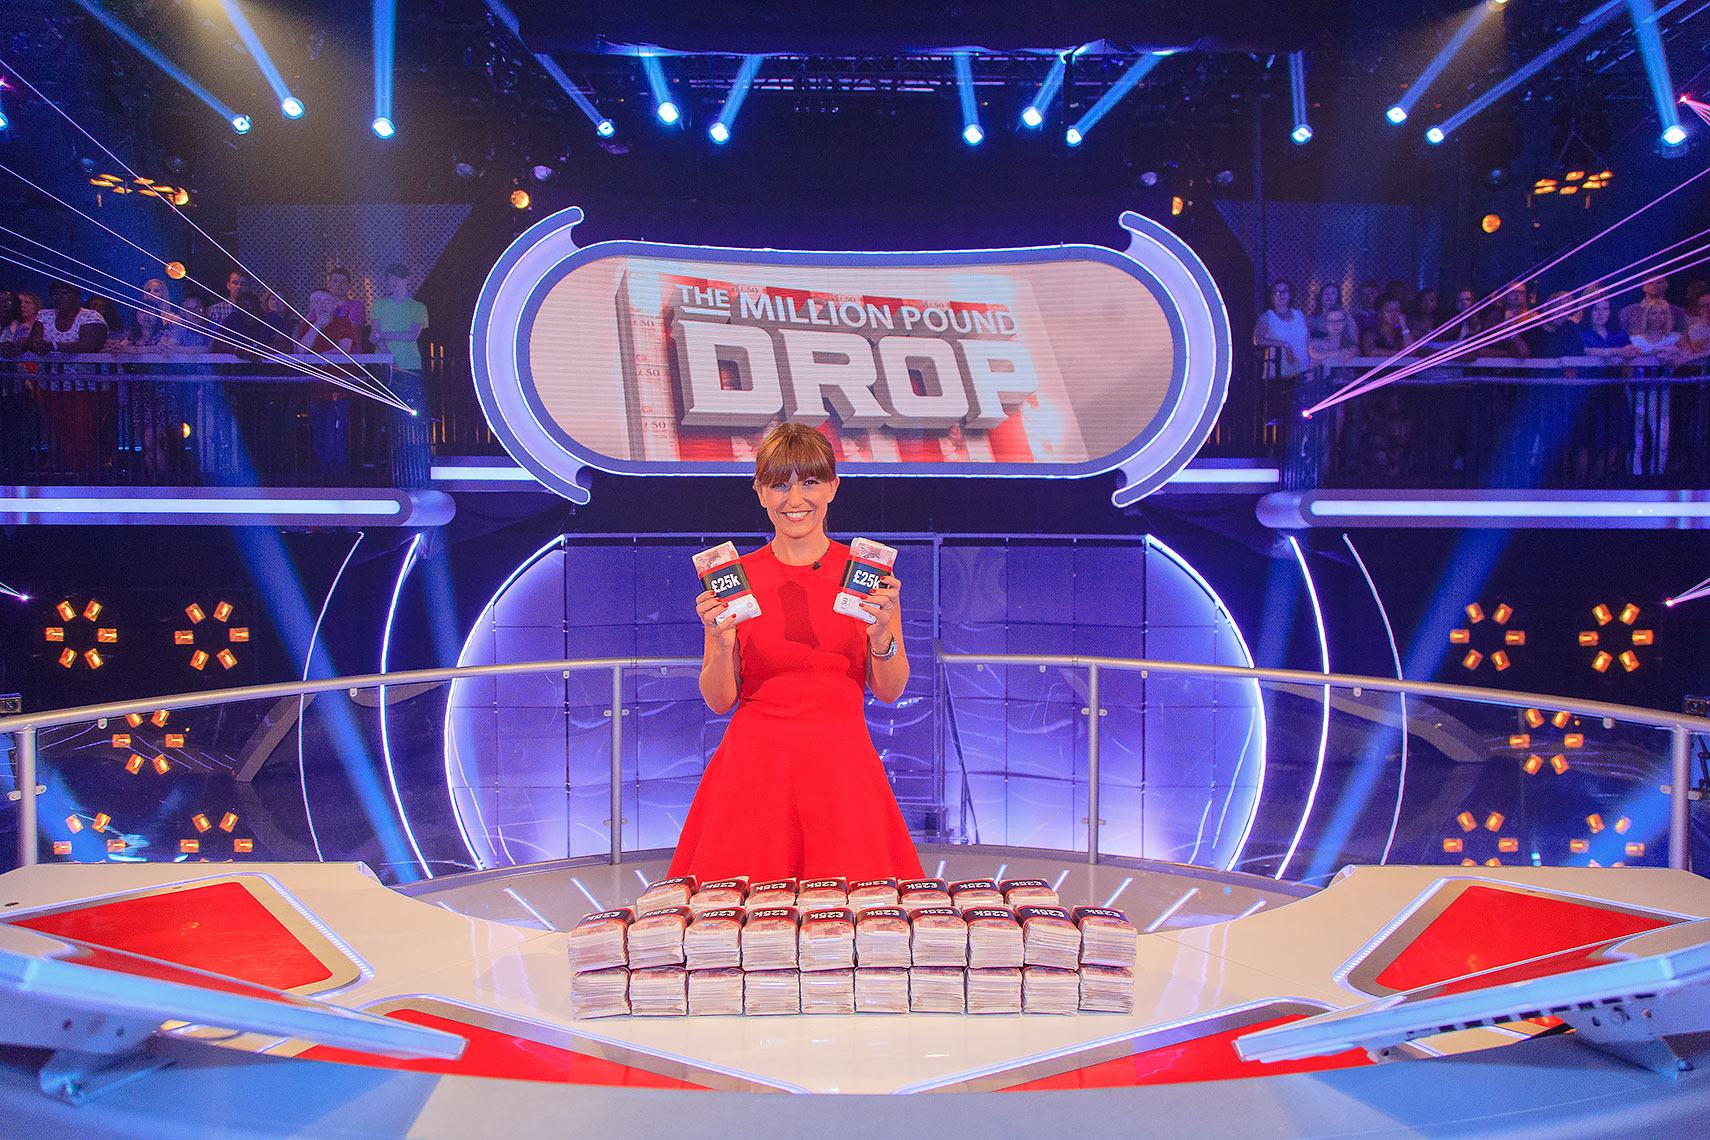 Television celebrity Davina McCall wearing gorgeous red dress and displaying cash on television set